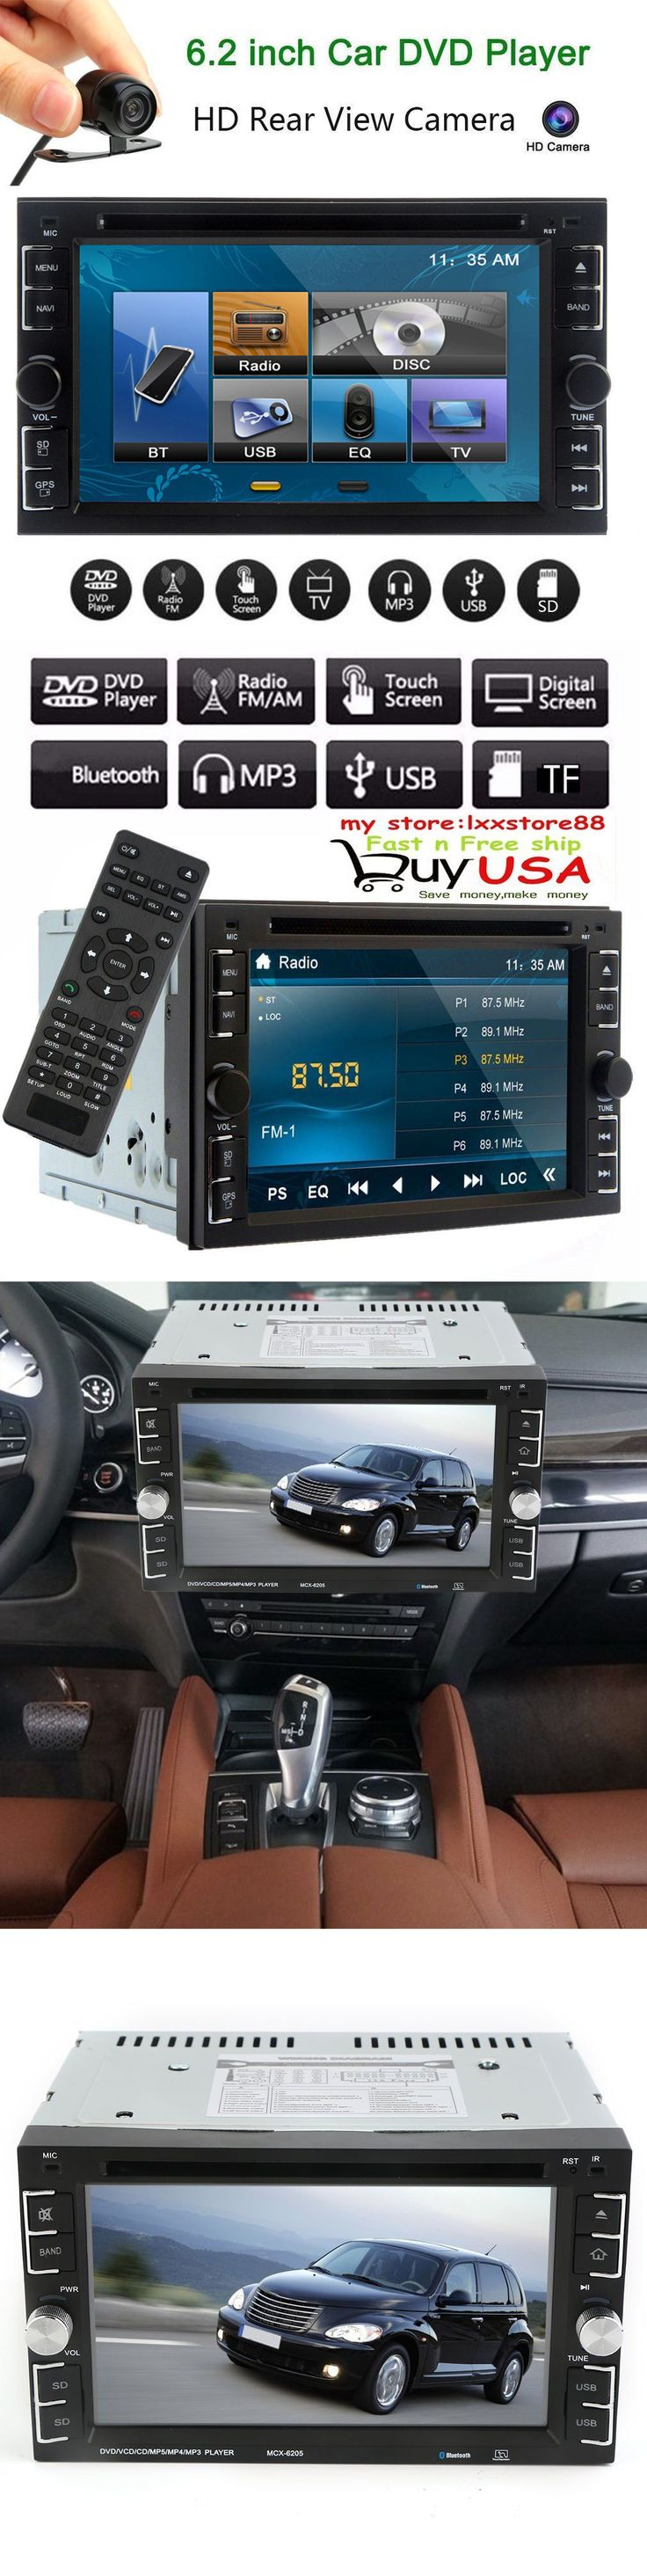 Vehicle Electronics And GPS: Double 2Din 6.2 Car Stereo Dvd Cd Mp3 Player Hd In Dash Bluetooth Tv Radioand Cam -> BUY IT NOW ONLY: $66.75 on eBay!